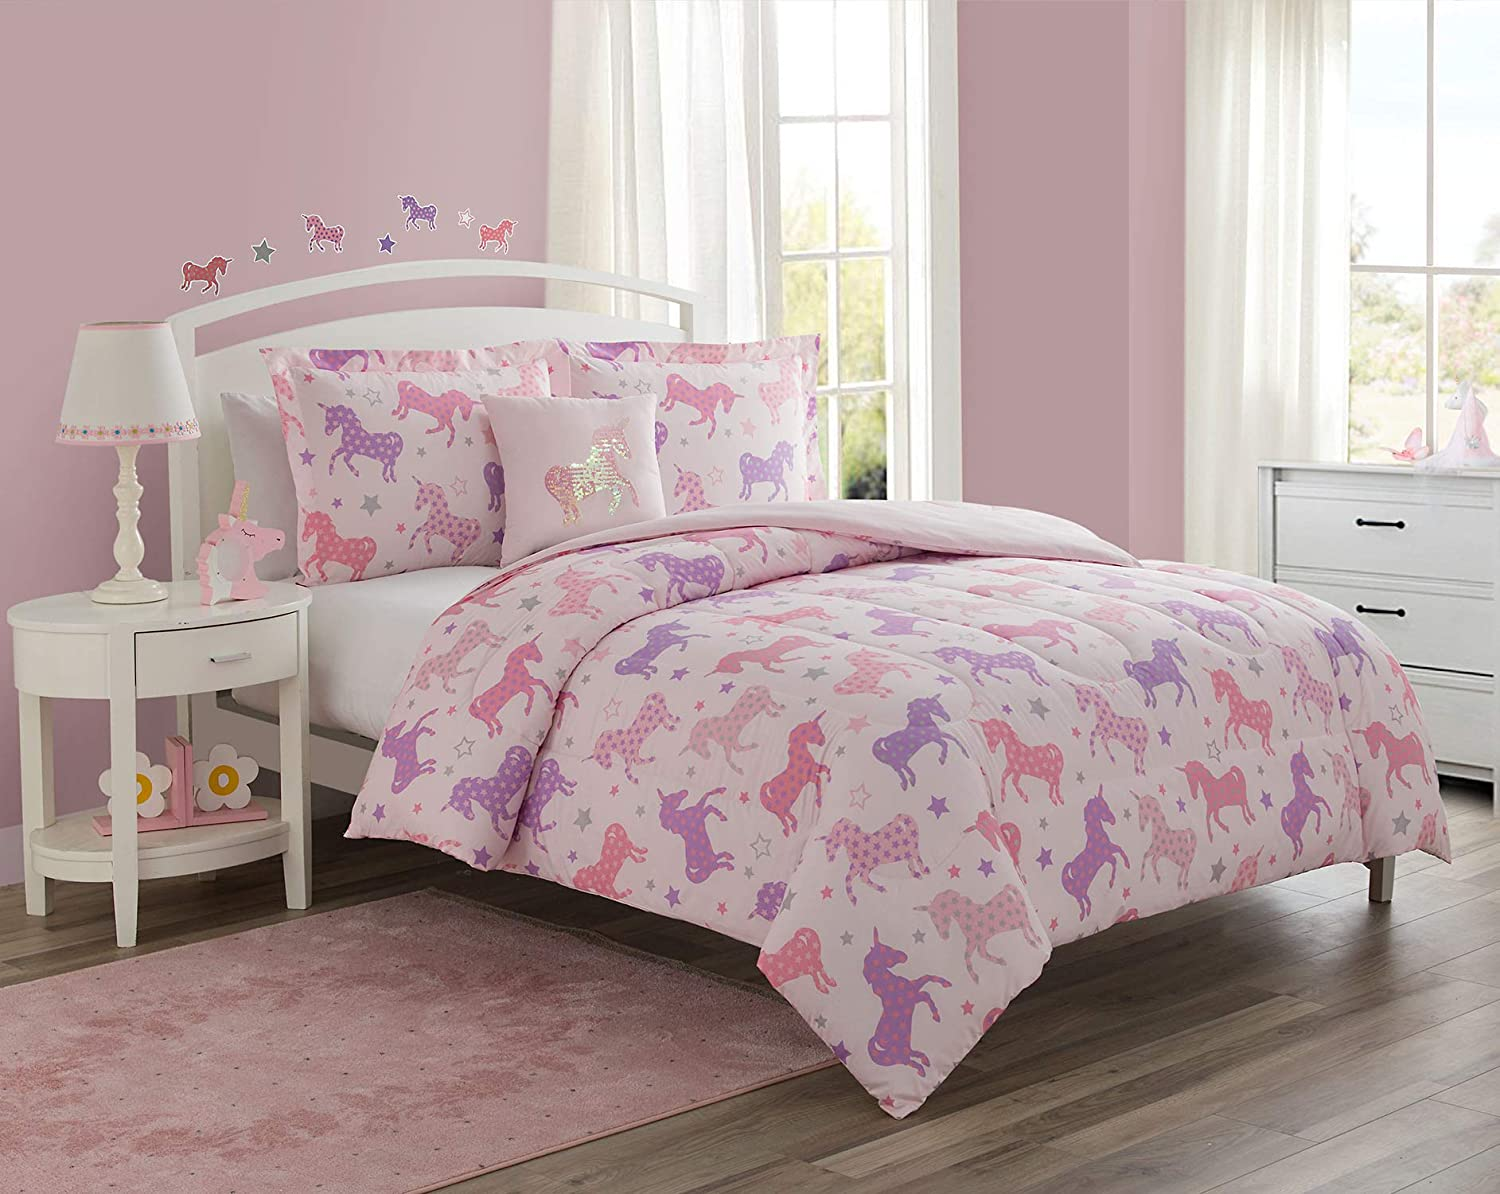 Mytex Starlight 3-Piece Reversible Featuring Set OFFicial store Comforter Pranc Excellence